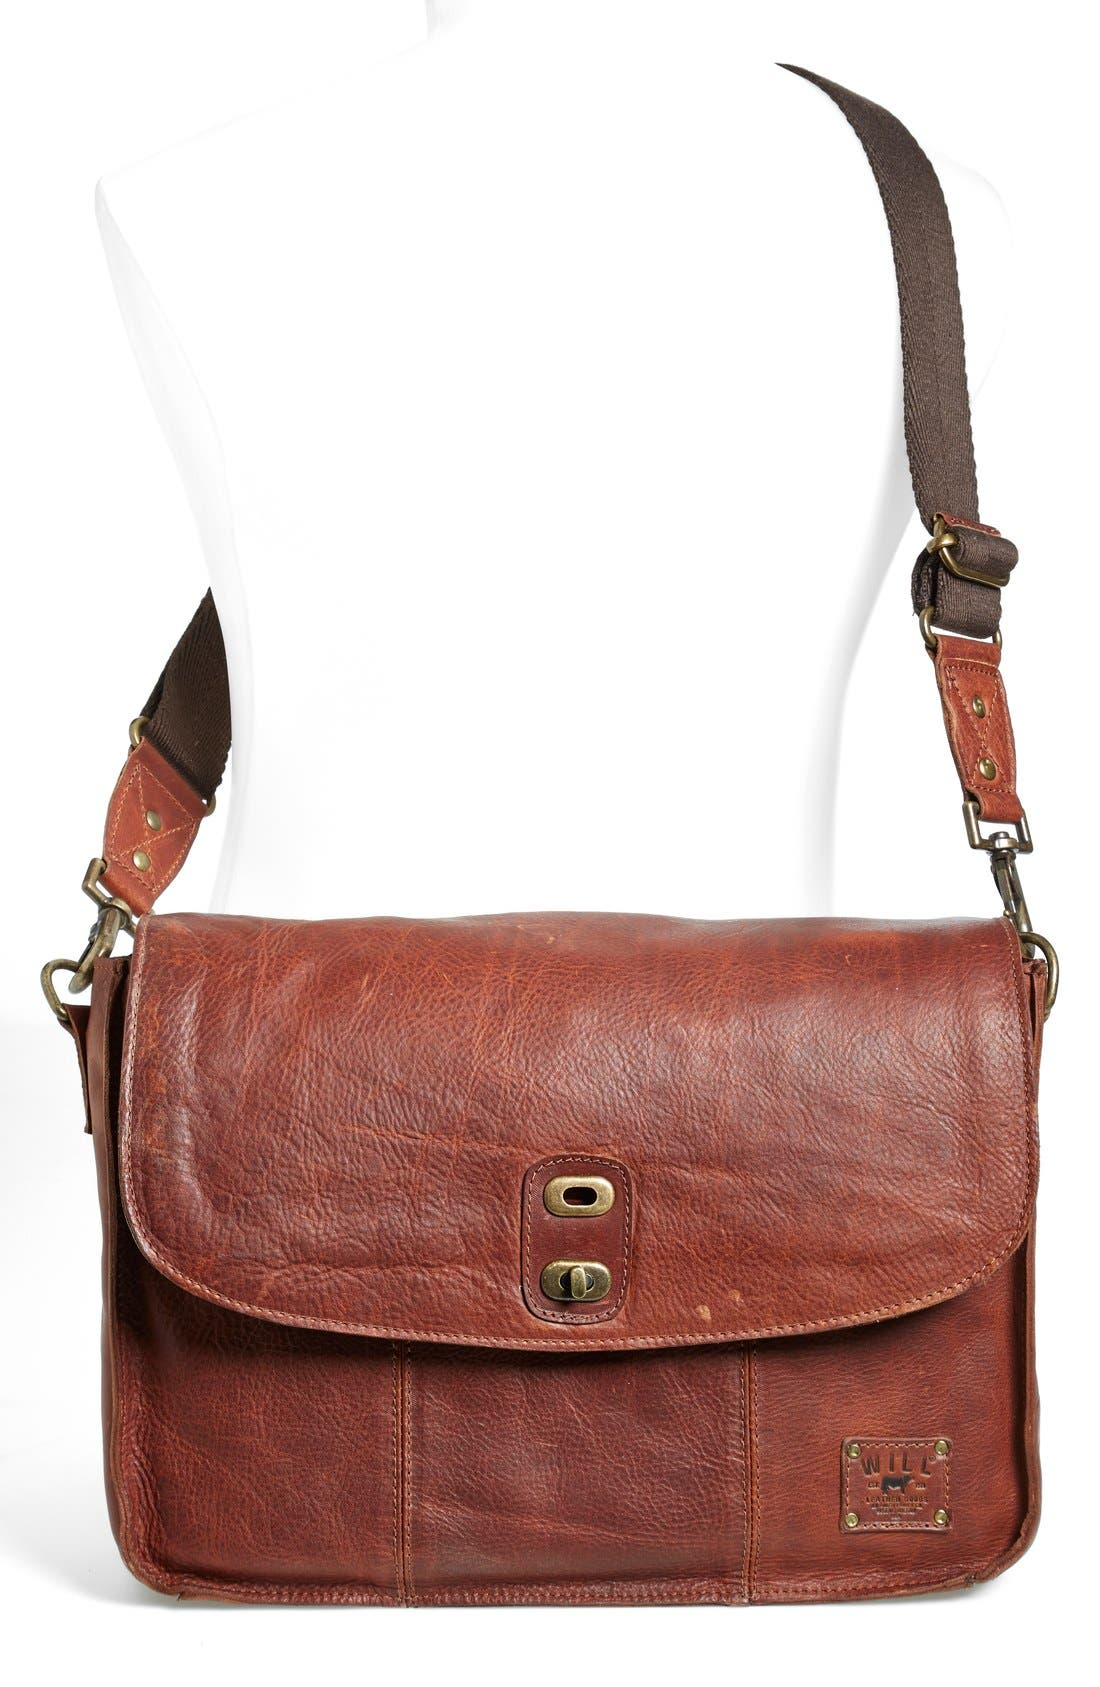 'Kent' Messenger Bag,                             Alternate thumbnail 2, color,                             231